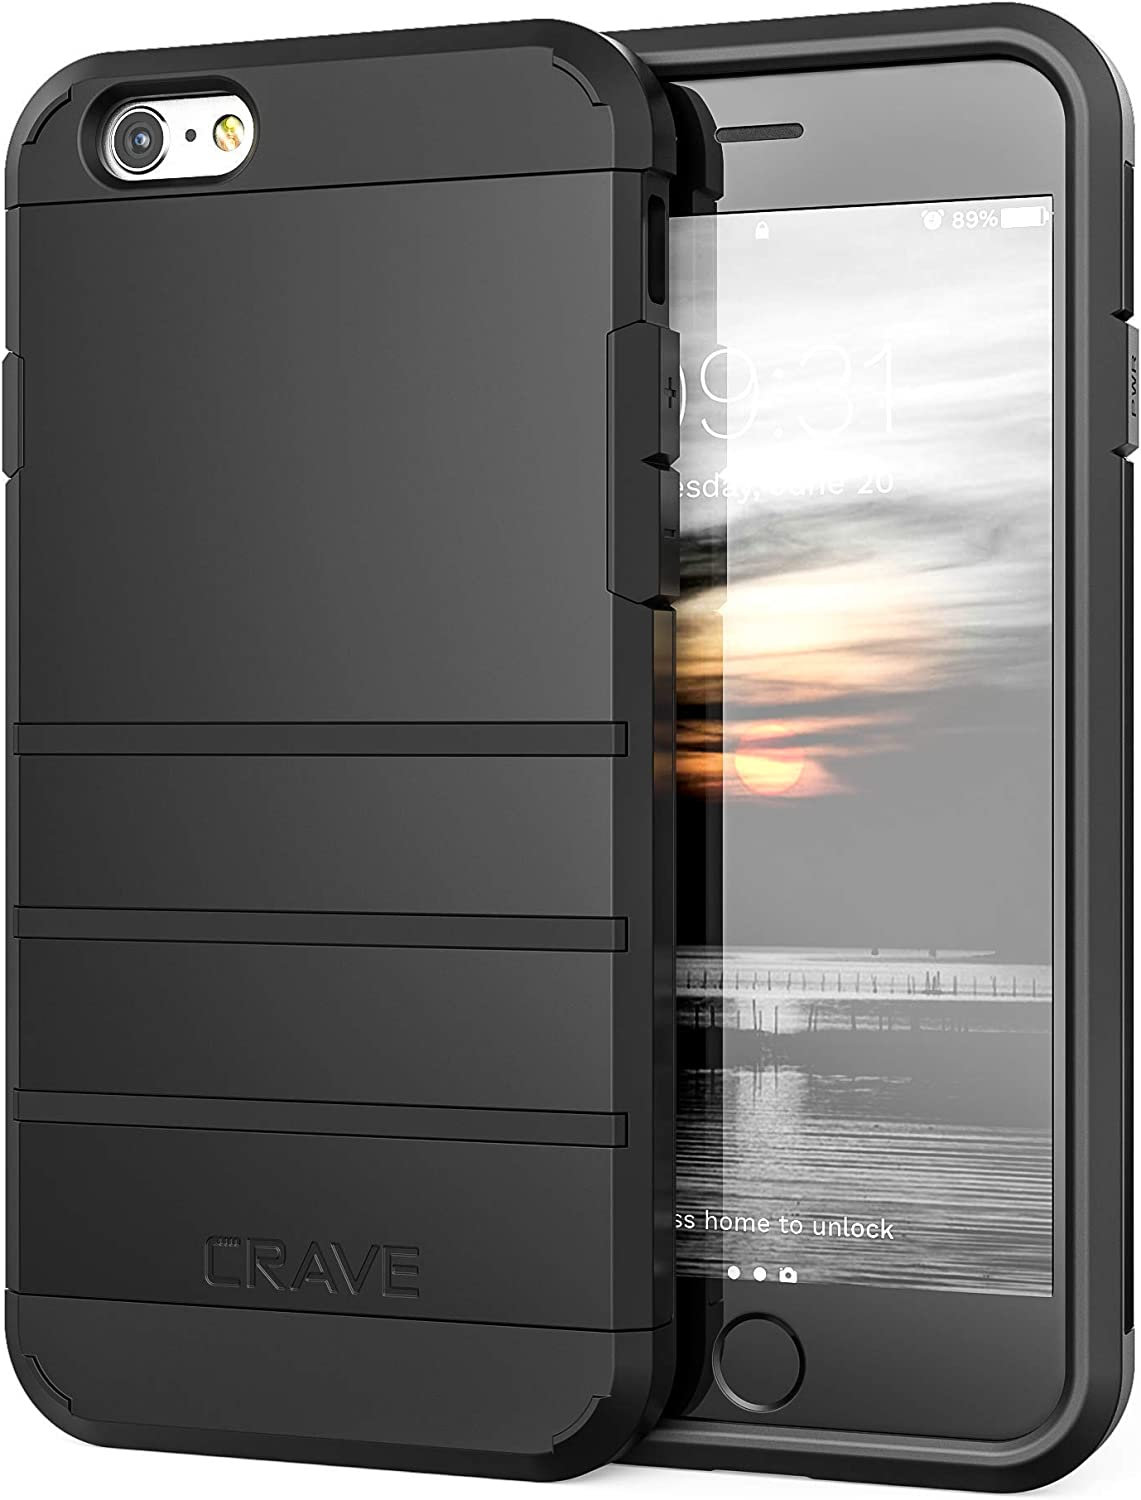 iPhone 6S Case, iPhone 6 Case, Crave Strong Guard Protection Series Case for Apple iPhone 6 6s (4.7 Inch) - Black